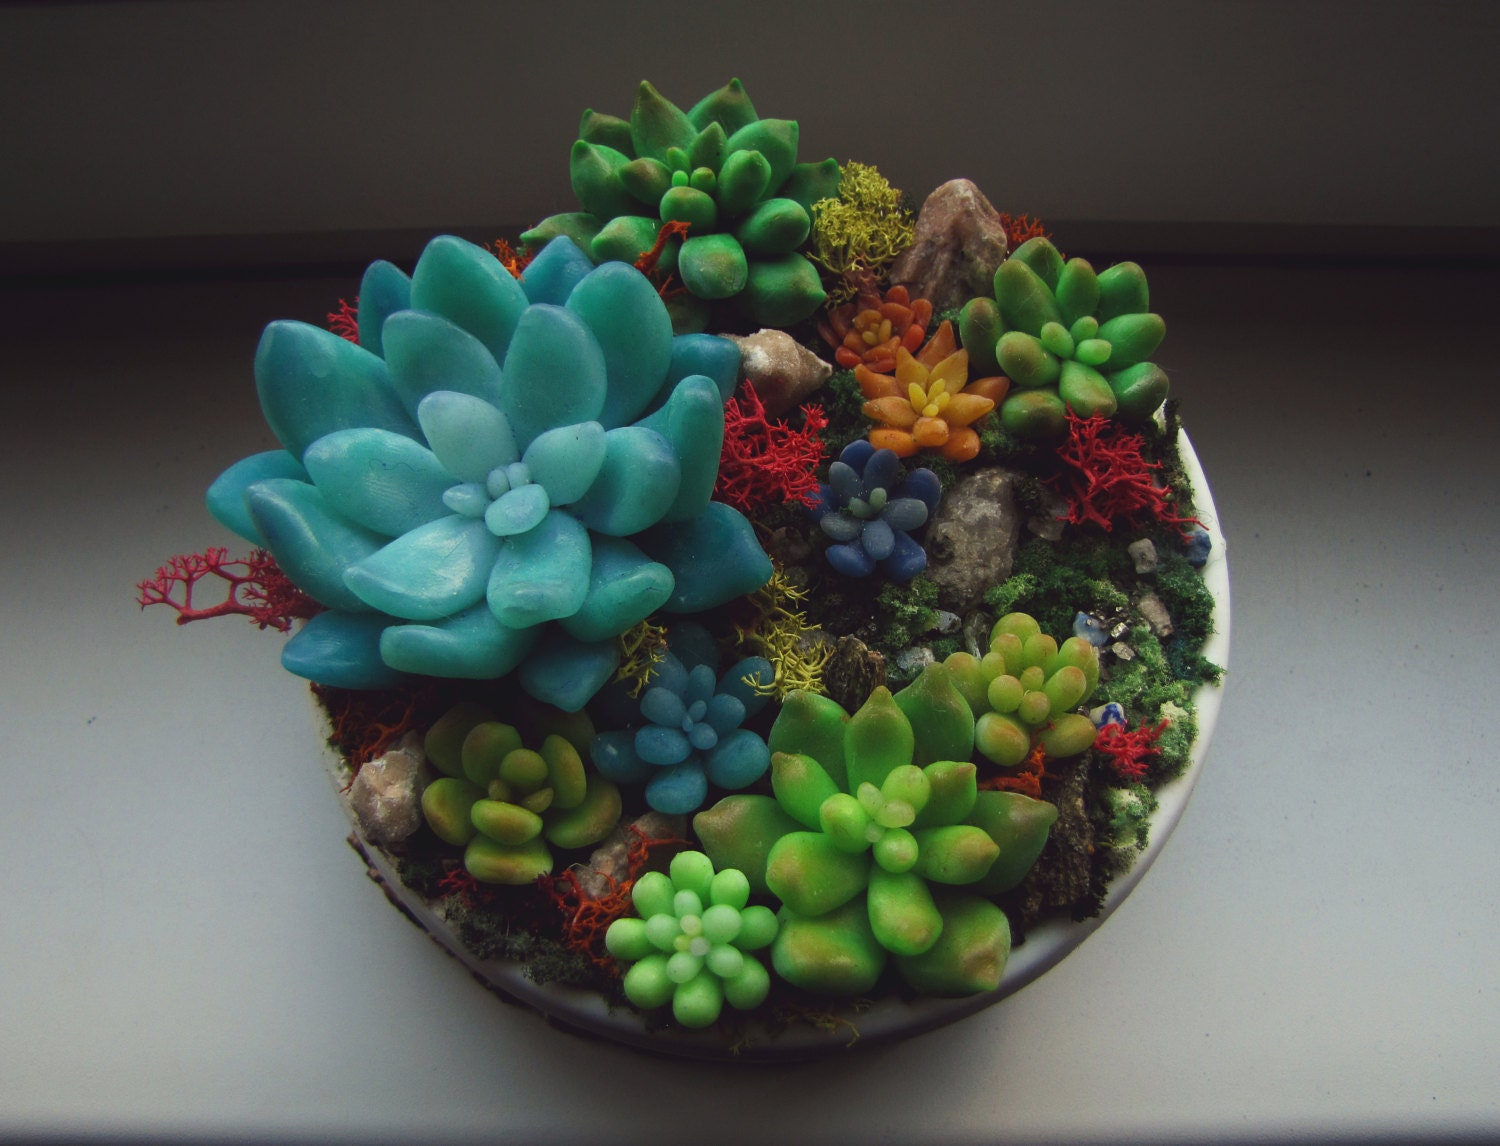 Pot with succulents polymer clay flowers colorful plants Colorful pots for indoor plants